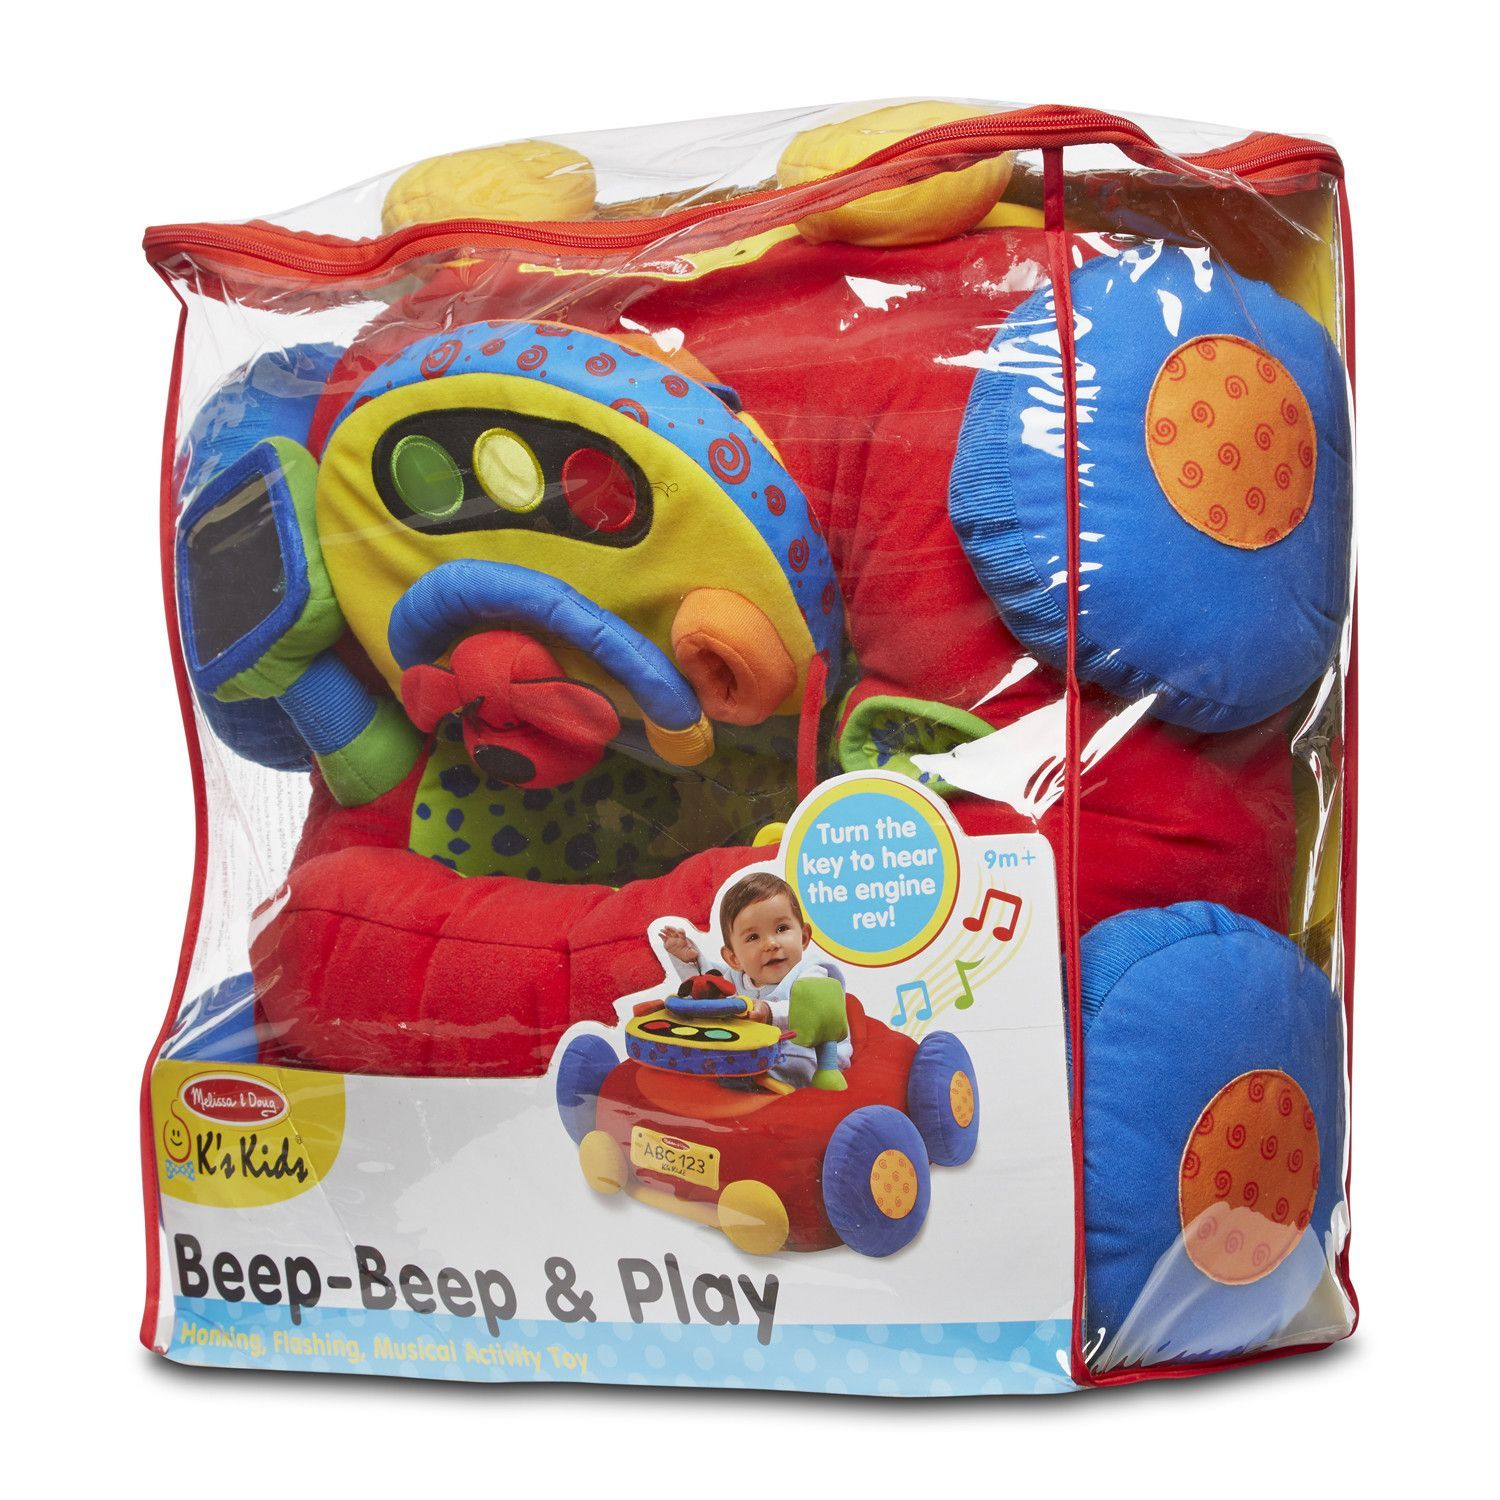 Toys for car dashboard  BeepBeep u Play  Diecast u Collectibles We Love  Pinterest  Products